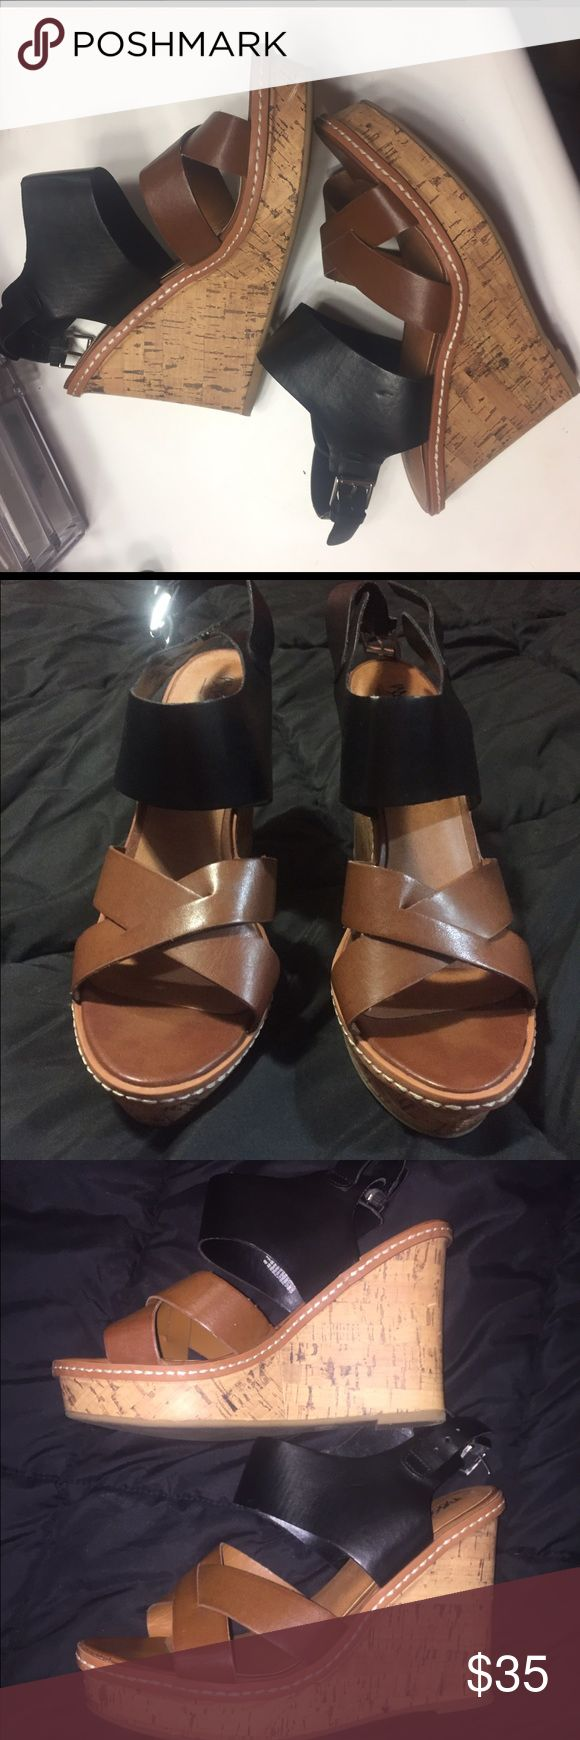 Black and brown summer wedges Black and brown fun summery wedges! Perfect addition to summer dress or a summer outfit! Size 8.5 Mossimo Supply Co Shoes Wedges